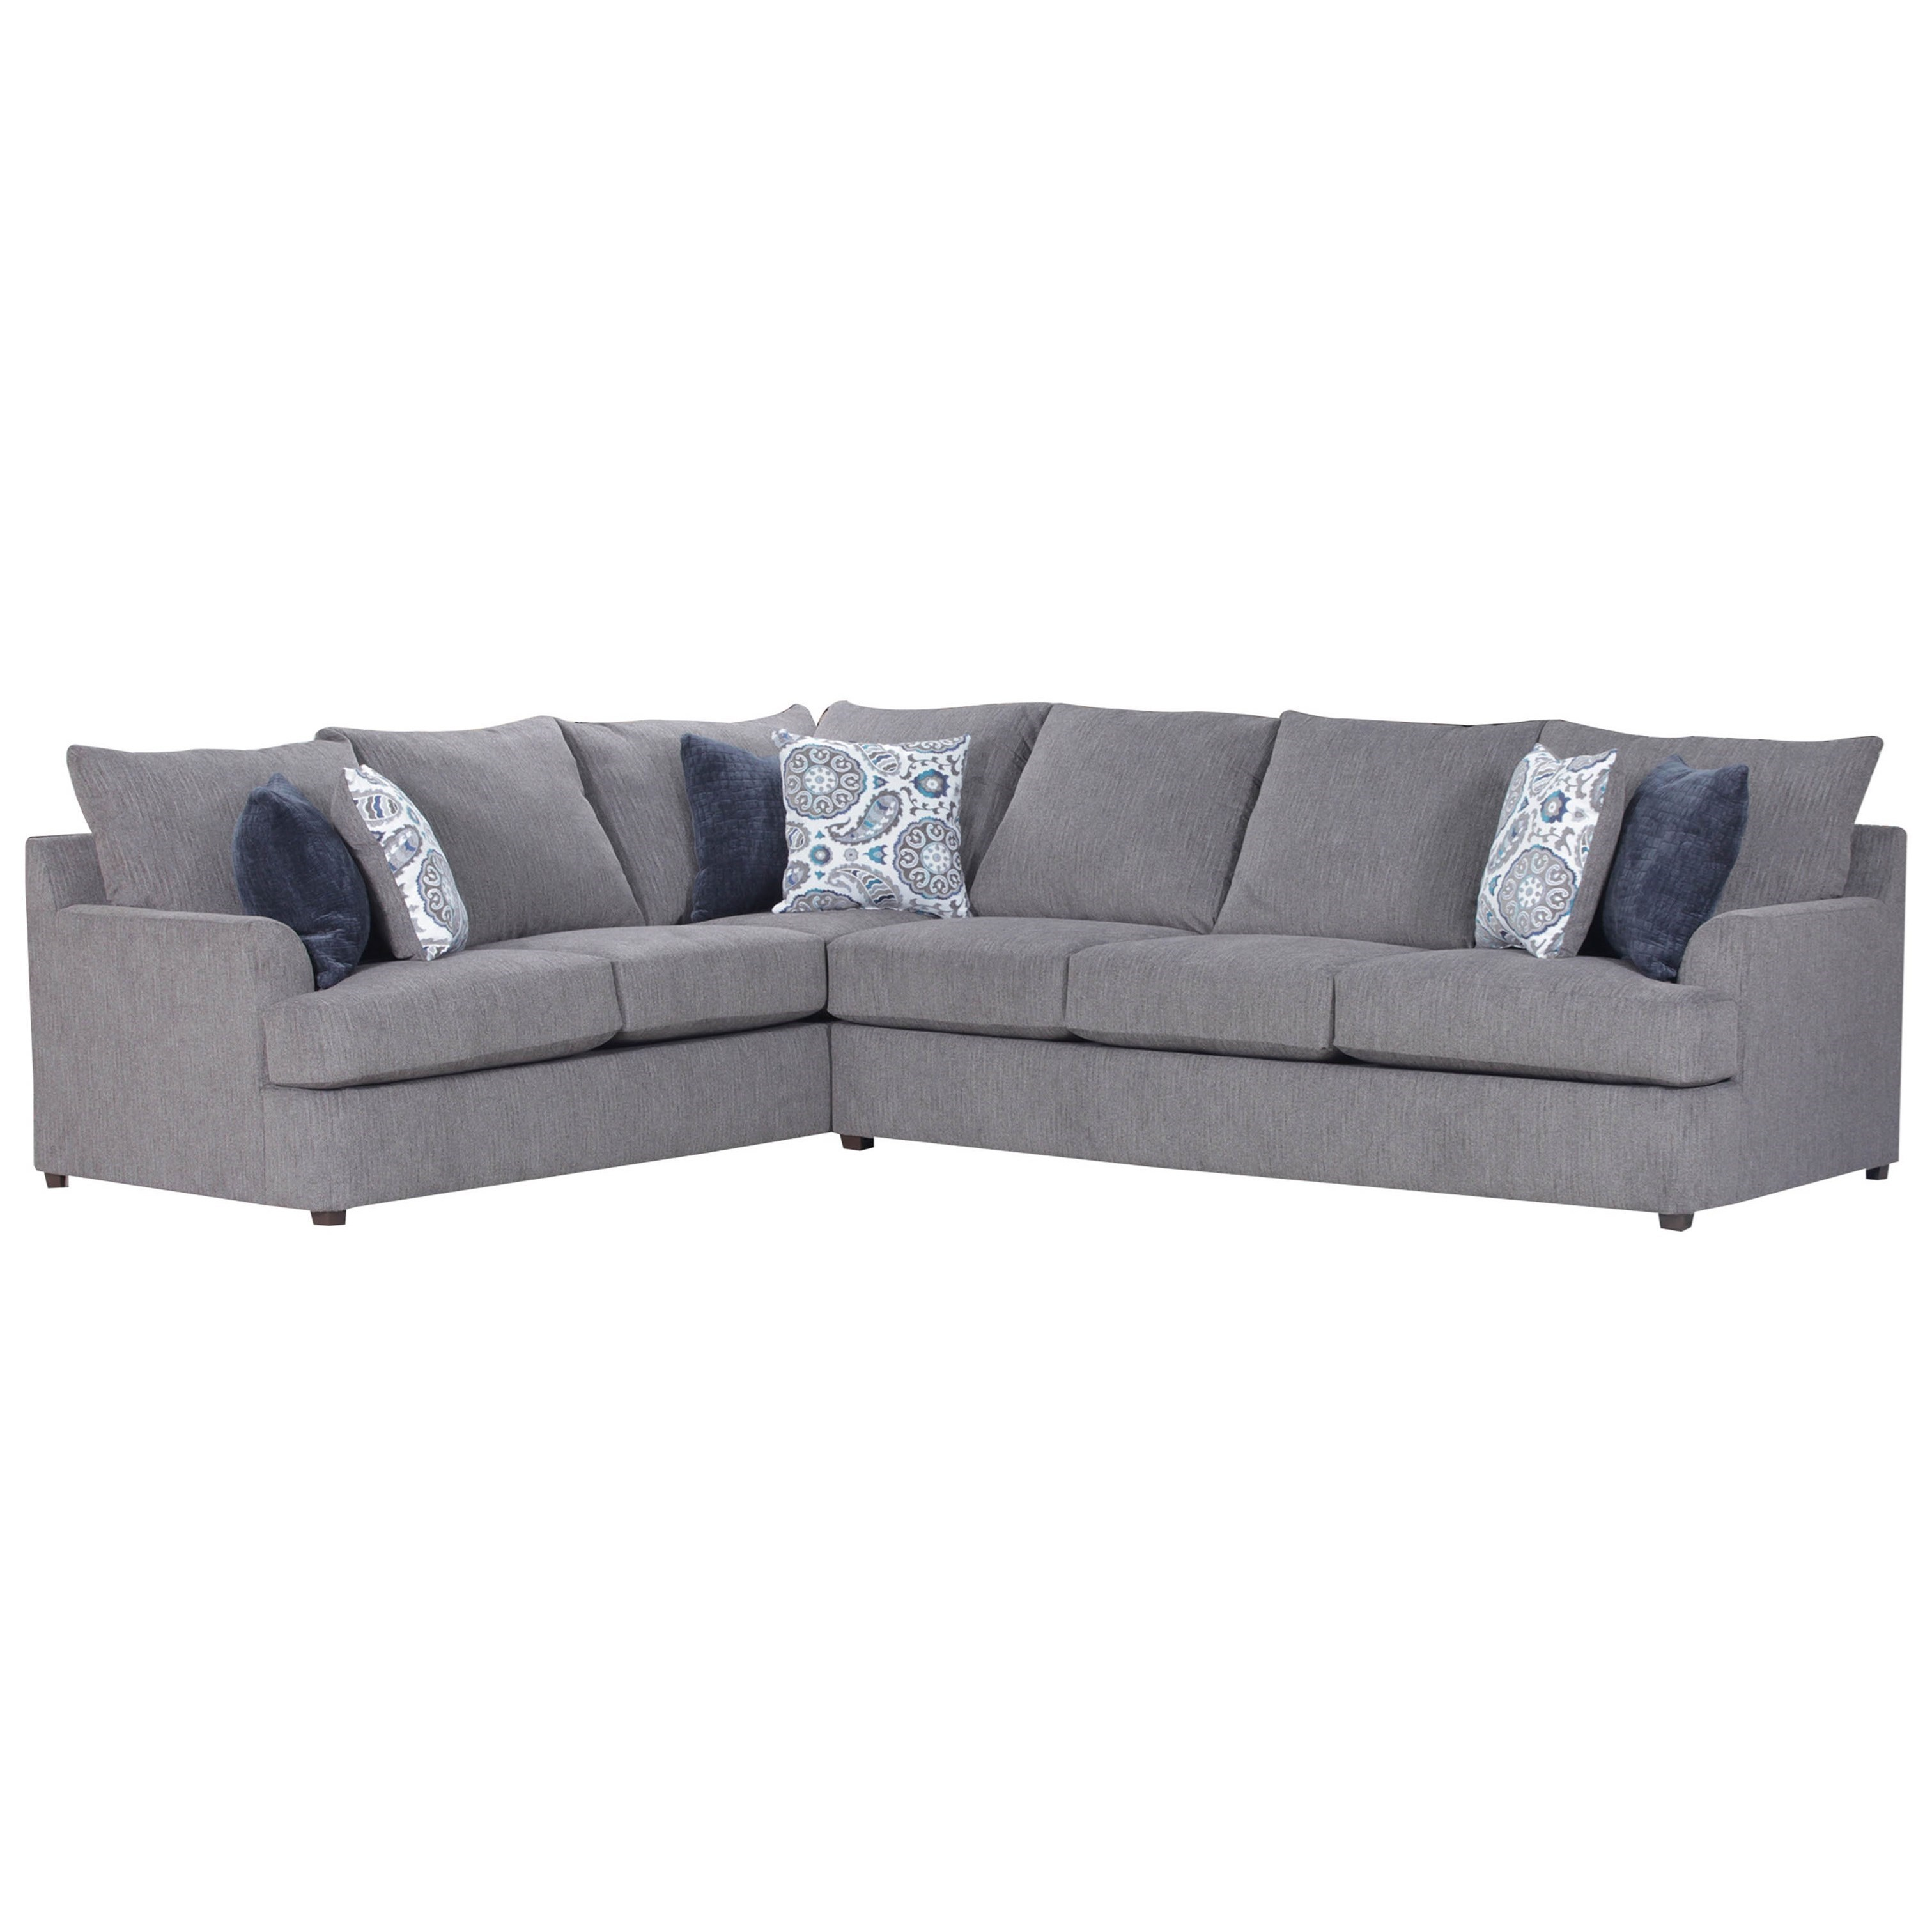 United furniture industries 8540br casual sectional sofa for Casual couch